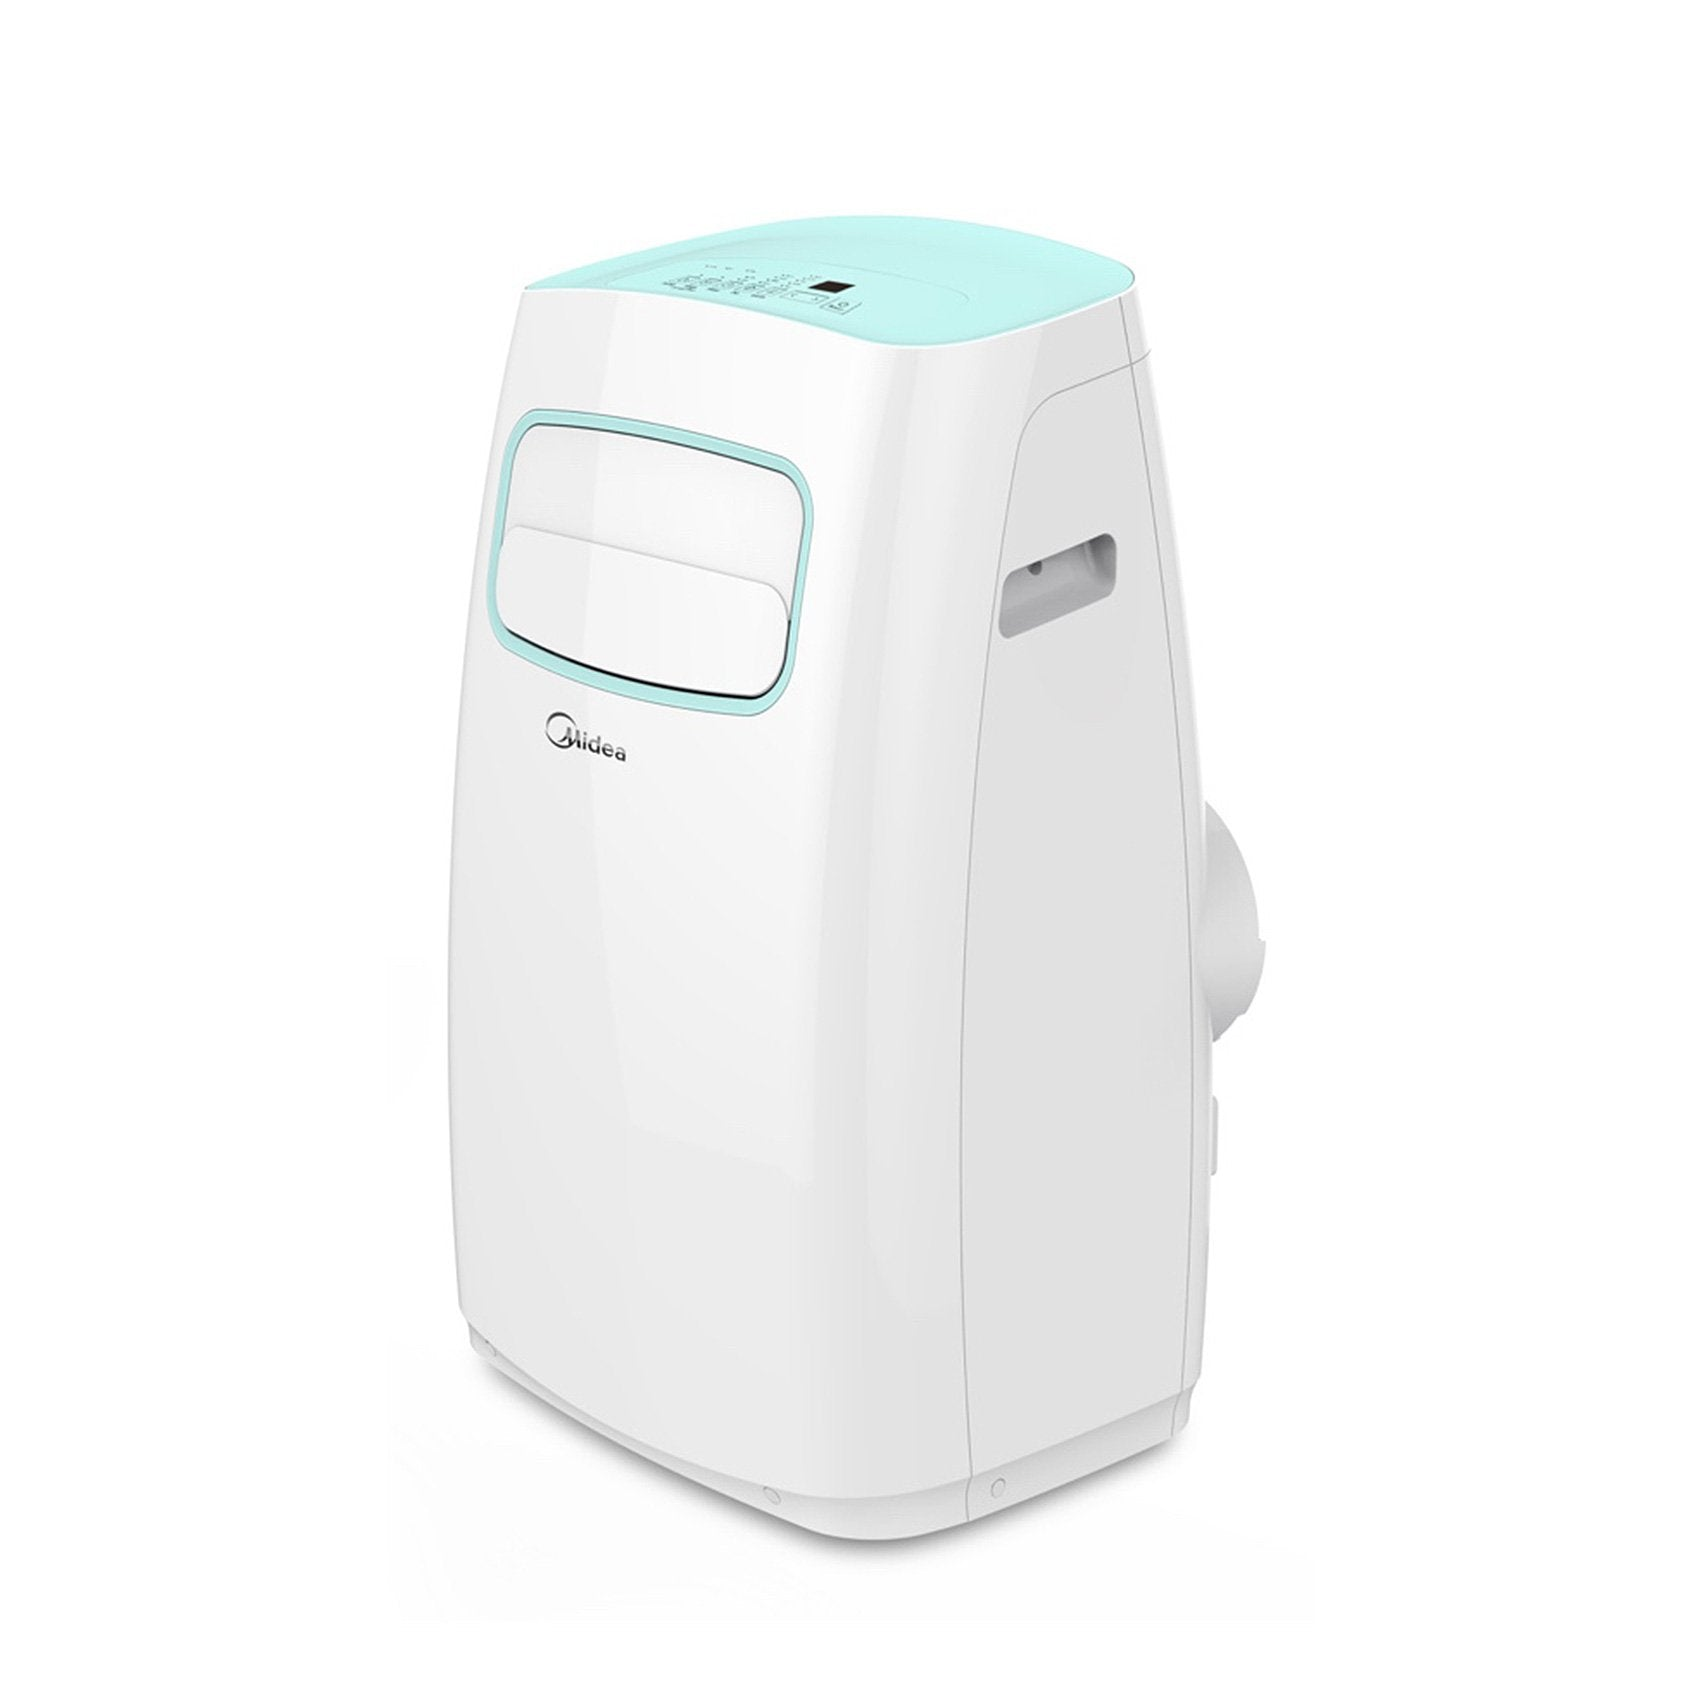 Portable Air Conditioner 2.9 kw Midea Portable PF Series Cooling Only - Star Sparky Direct